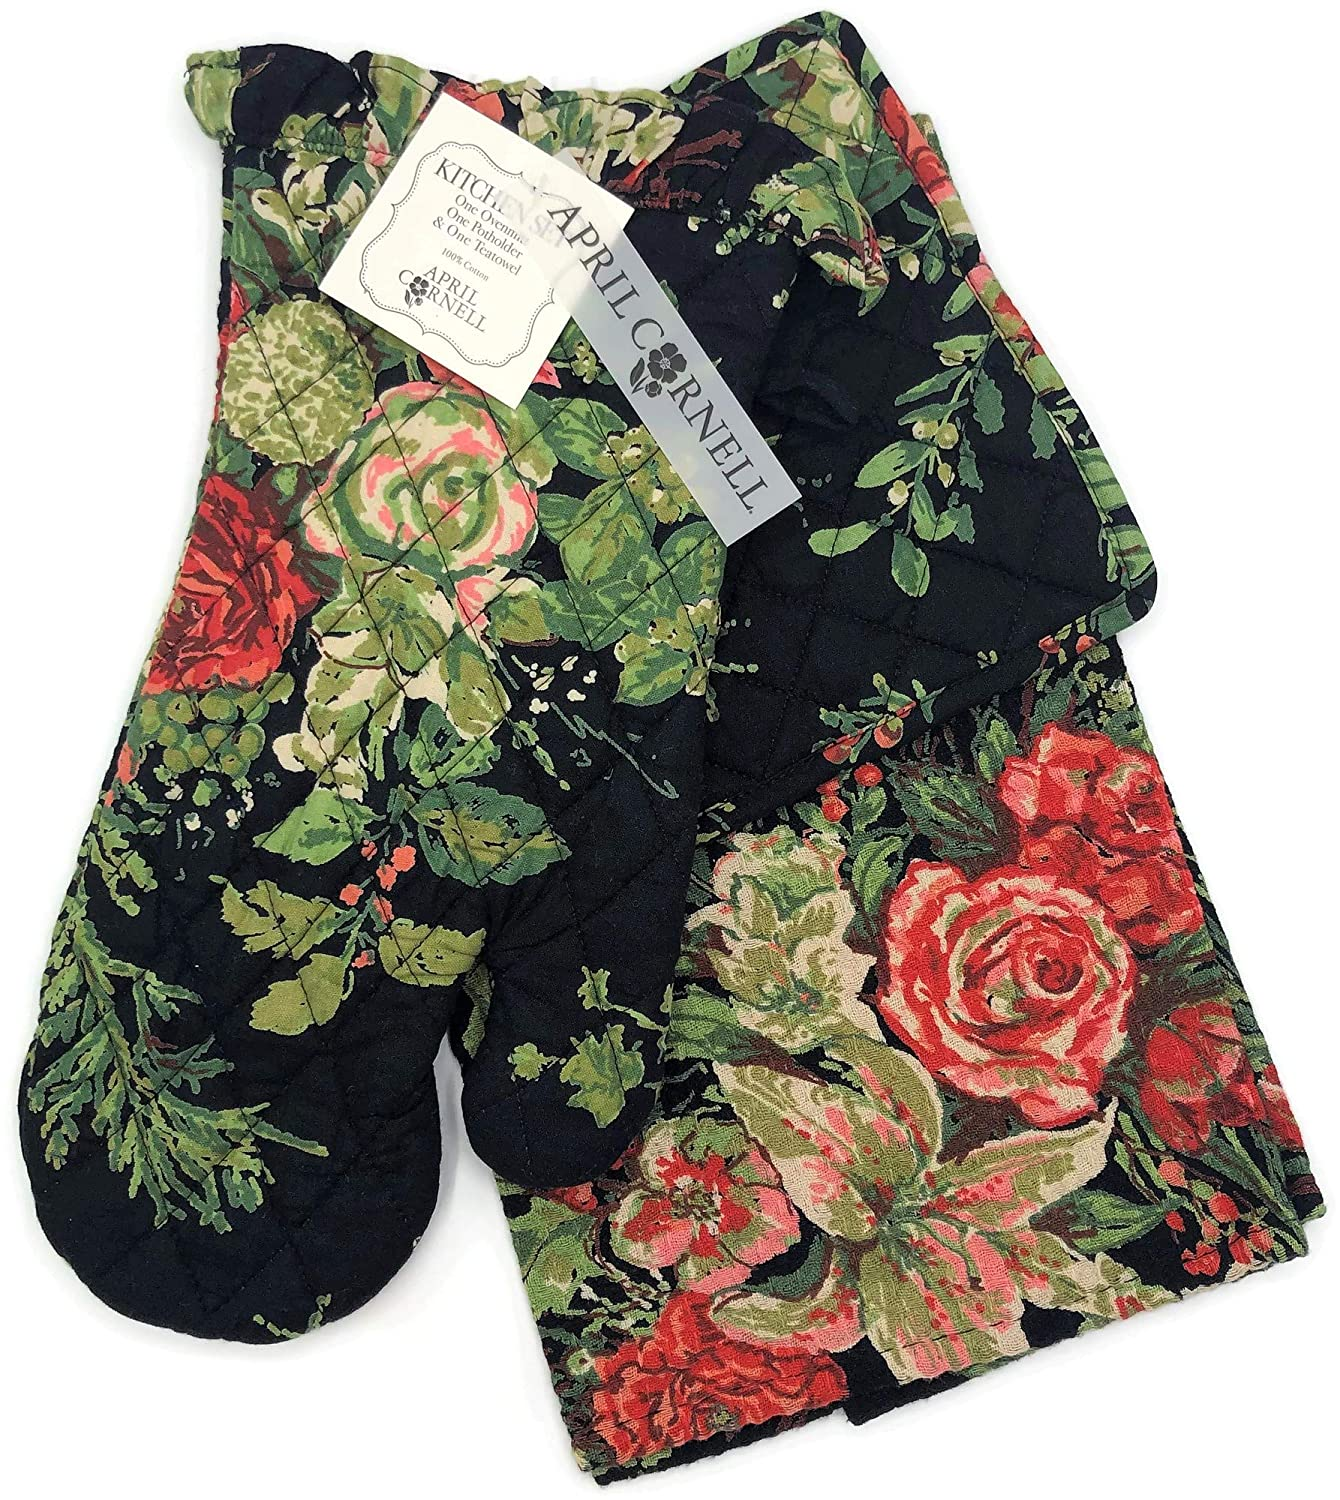 April Cornell Merry (Black) Floral Tea Towel, Oven Mitt & Potholder 3-Piece Kitchen Set, Christmas Bouquet Pattern with Sprigs of Pine and Holly